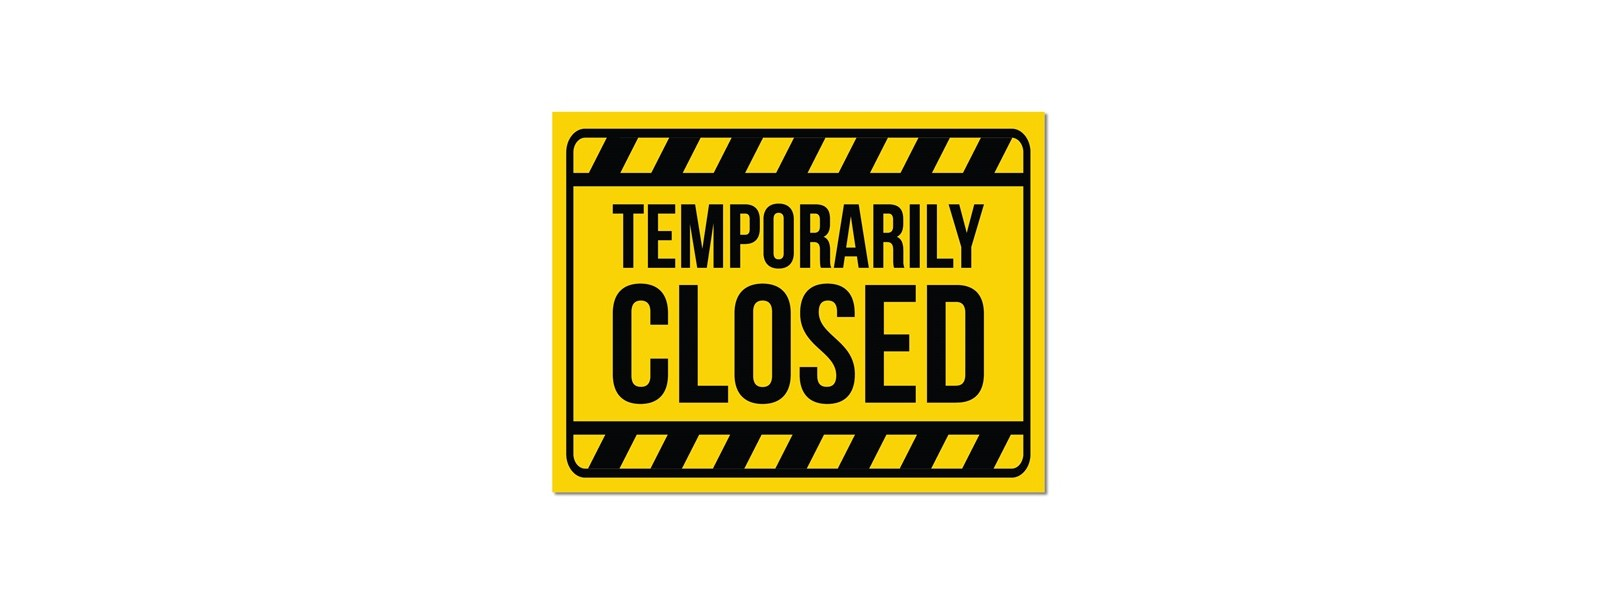 All Liquor Stores MUST remain closed on 25th May ; Excise Department